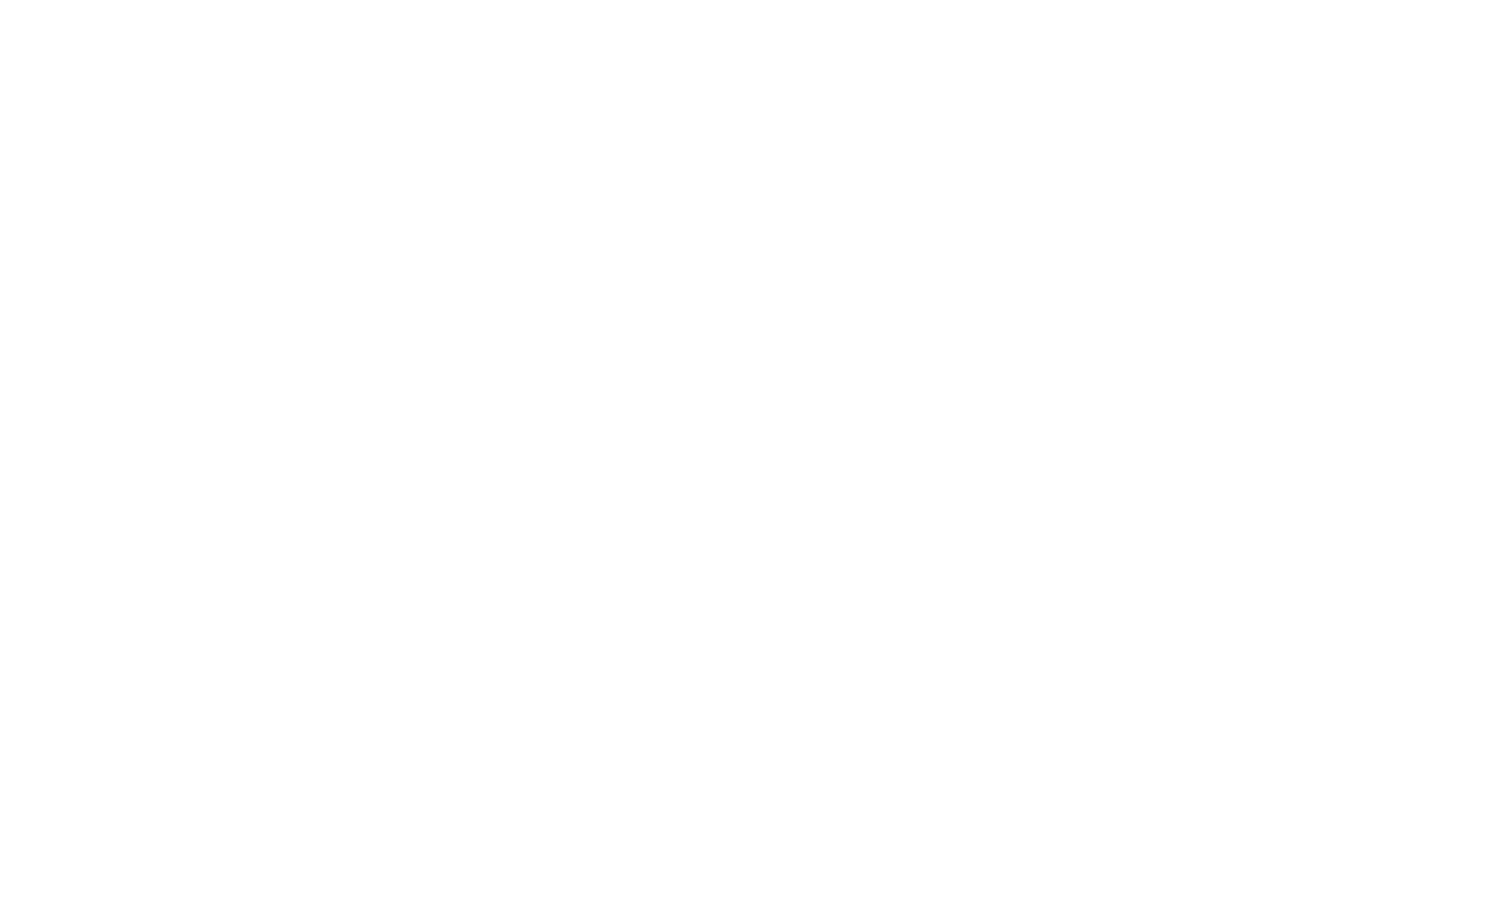 Monisa J. Photography